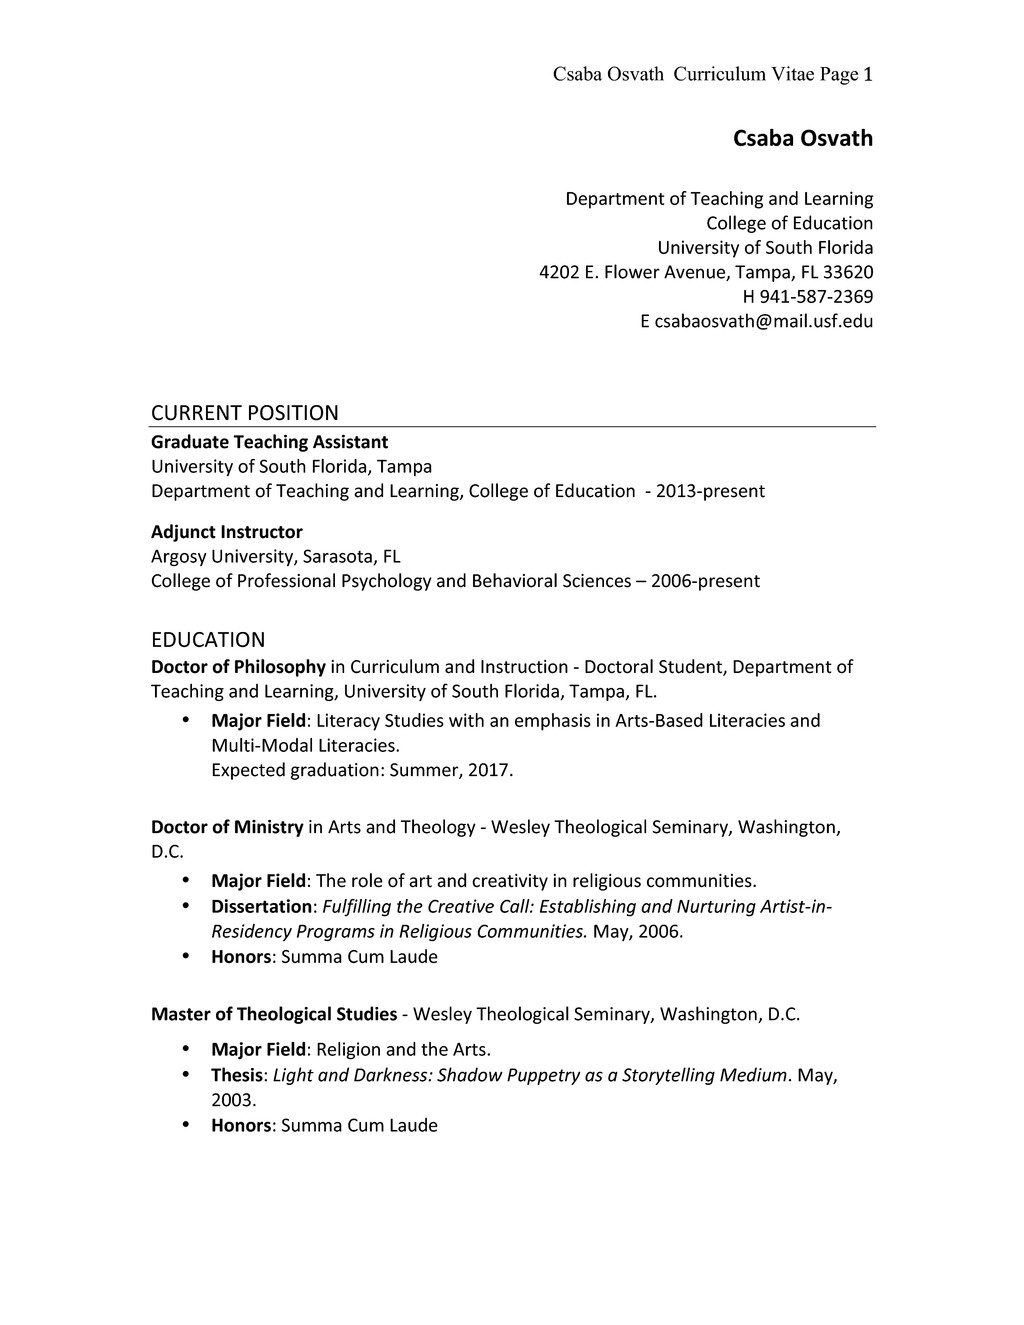 Research Proposal Parts Three